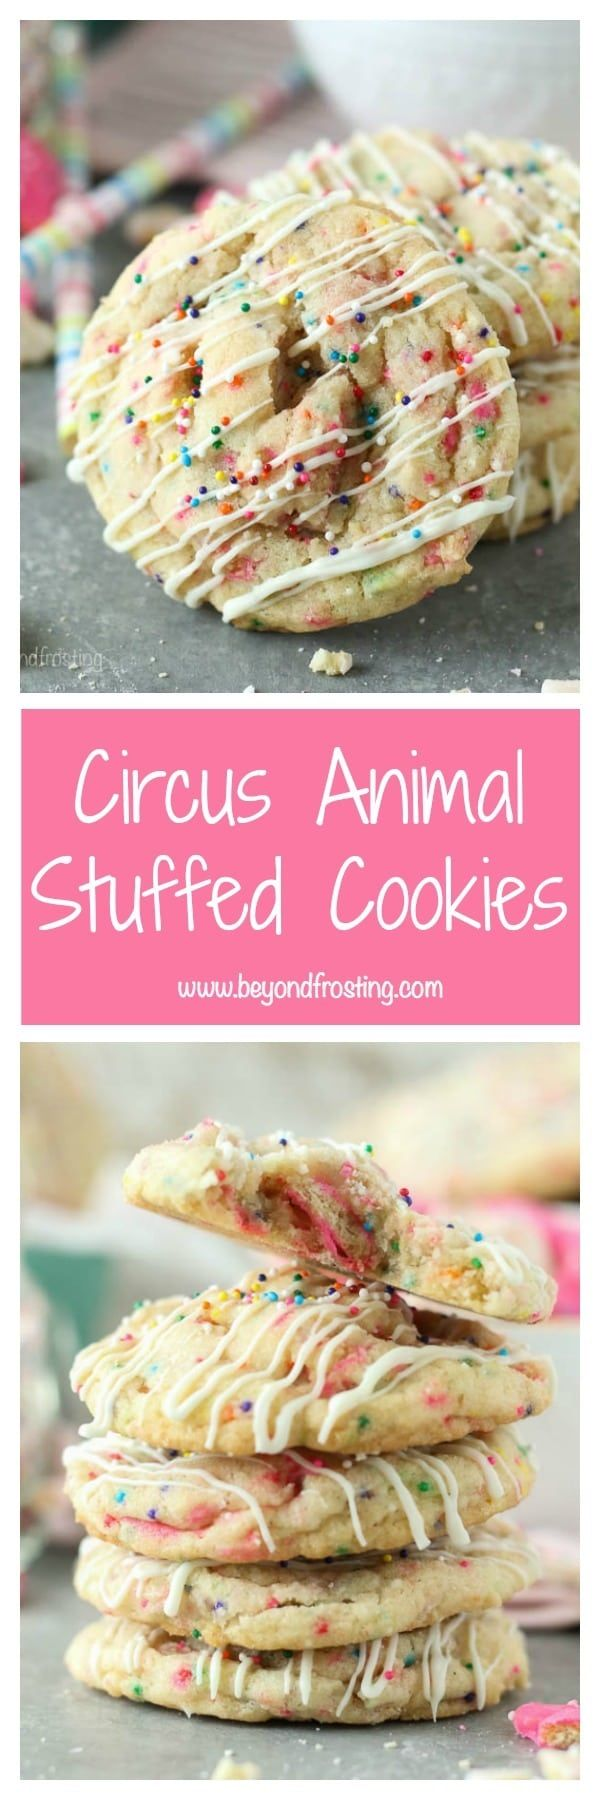 These Circus Animal Stuffed Cookies are the soft and chewy and filled with frosted circus animal cookies, with a drizzle of white chocolate and sprinkles on top.